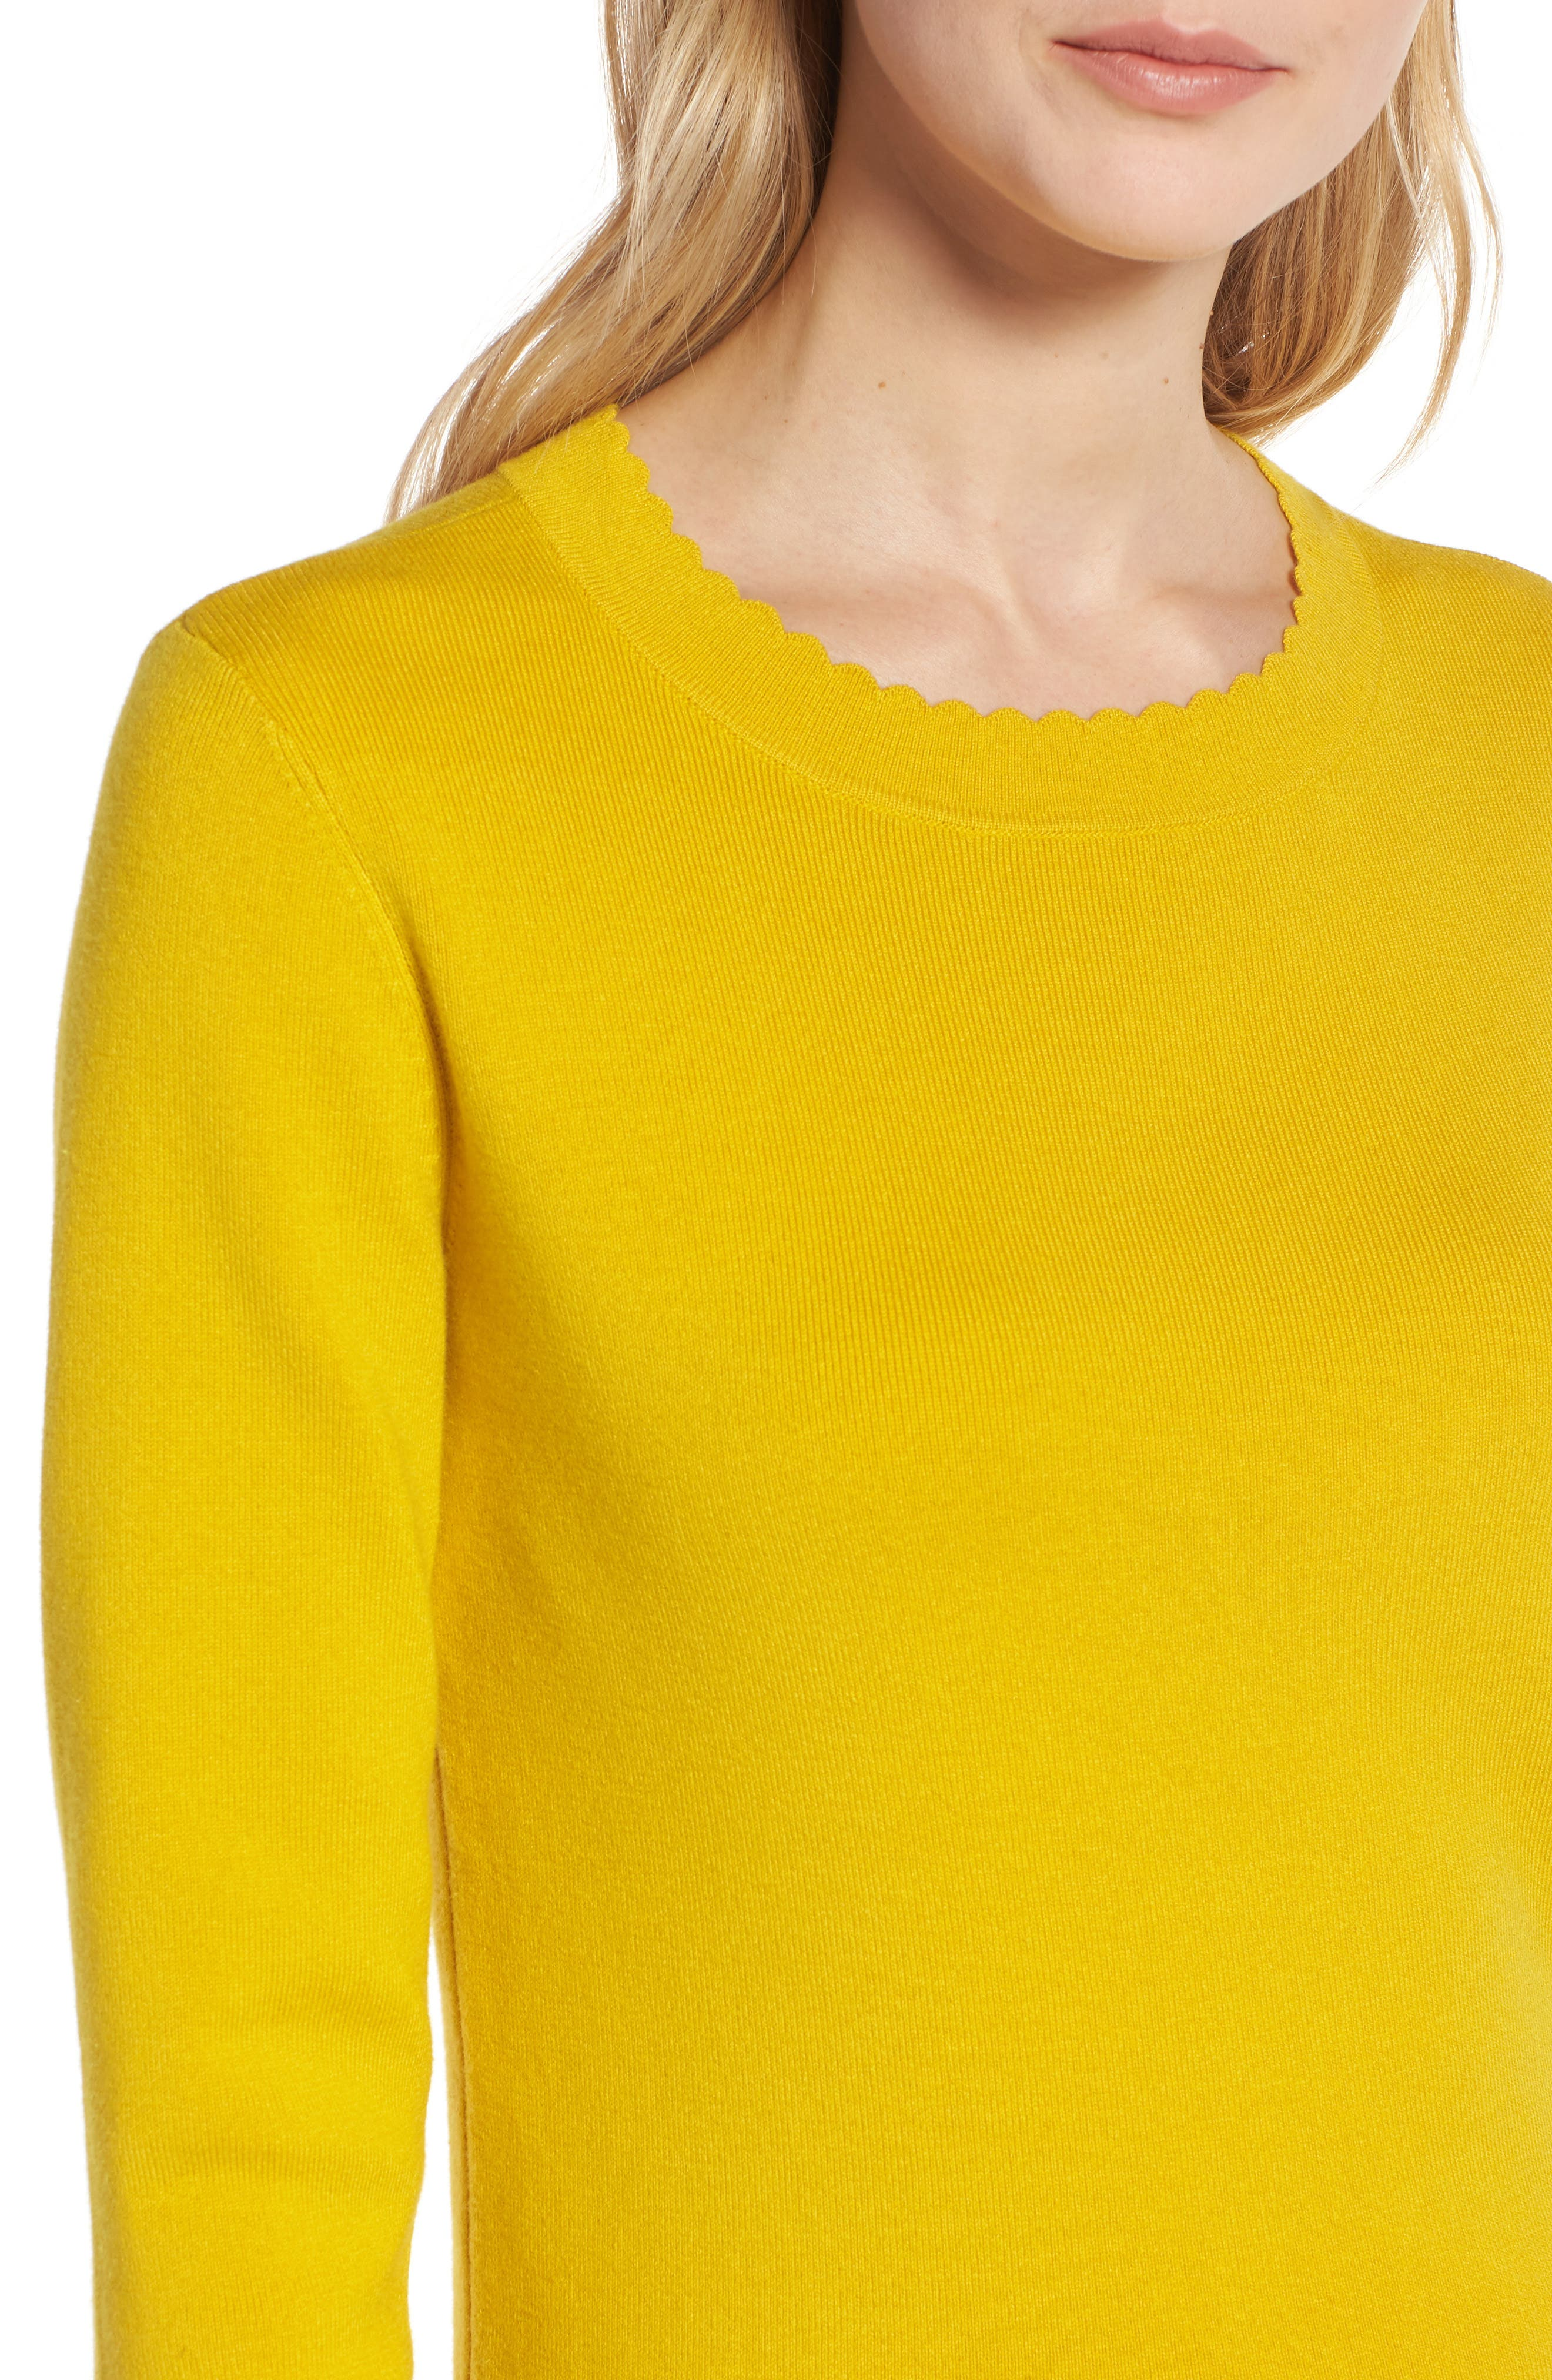 Scallop Trim Sweater,                             Alternate thumbnail 4, color,                             Yellow Sulphur